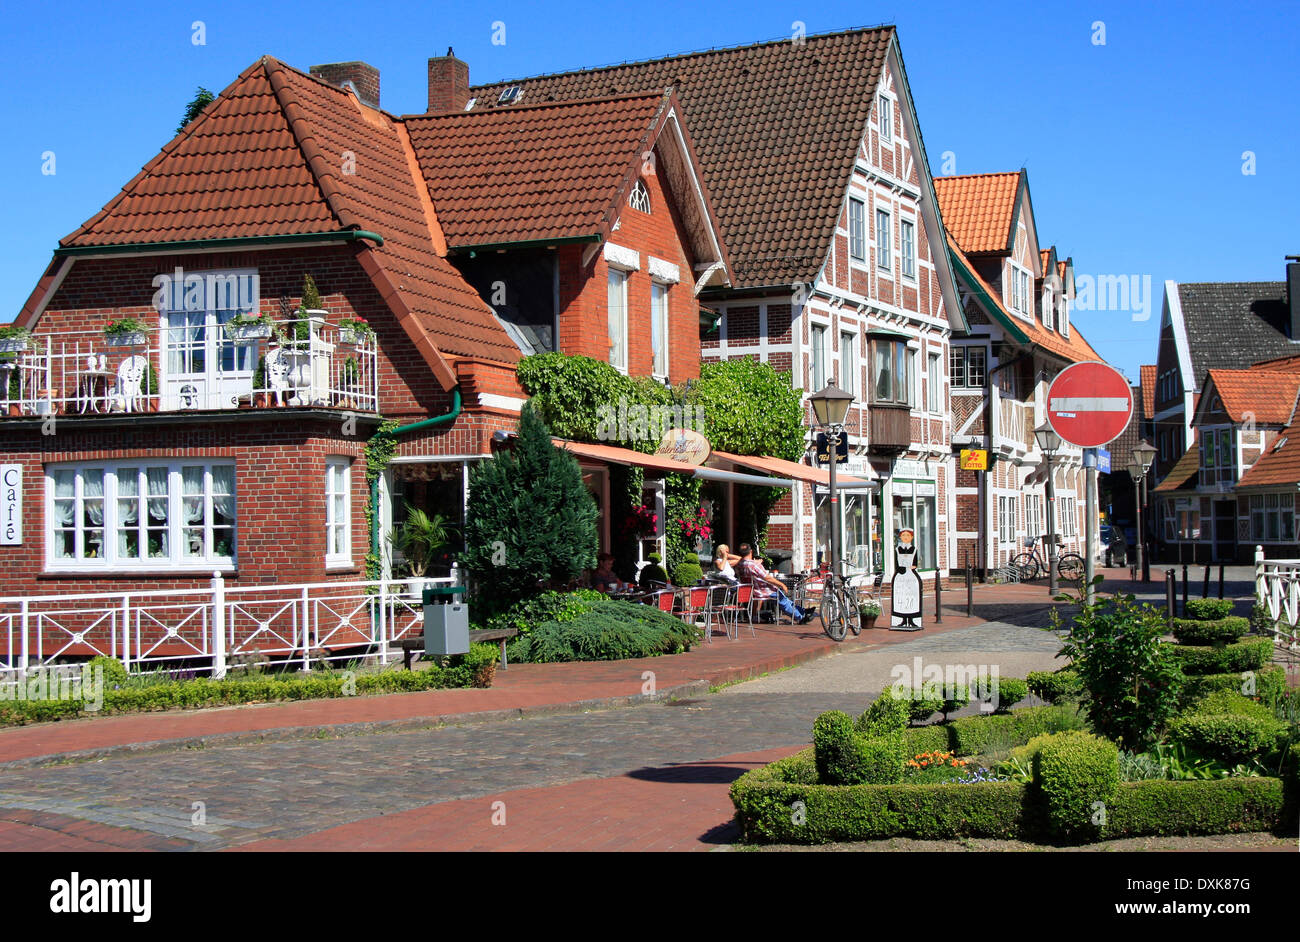 Half-timbered house in York. The style of the half-timbered houses is impressive. York is bordered of Hamburg and is the center of the are Altes Land, one of the largest fruit-growing areas in Europe. Photo: Klaus Nowottnick Date: May 23, 2009 - Stock Image